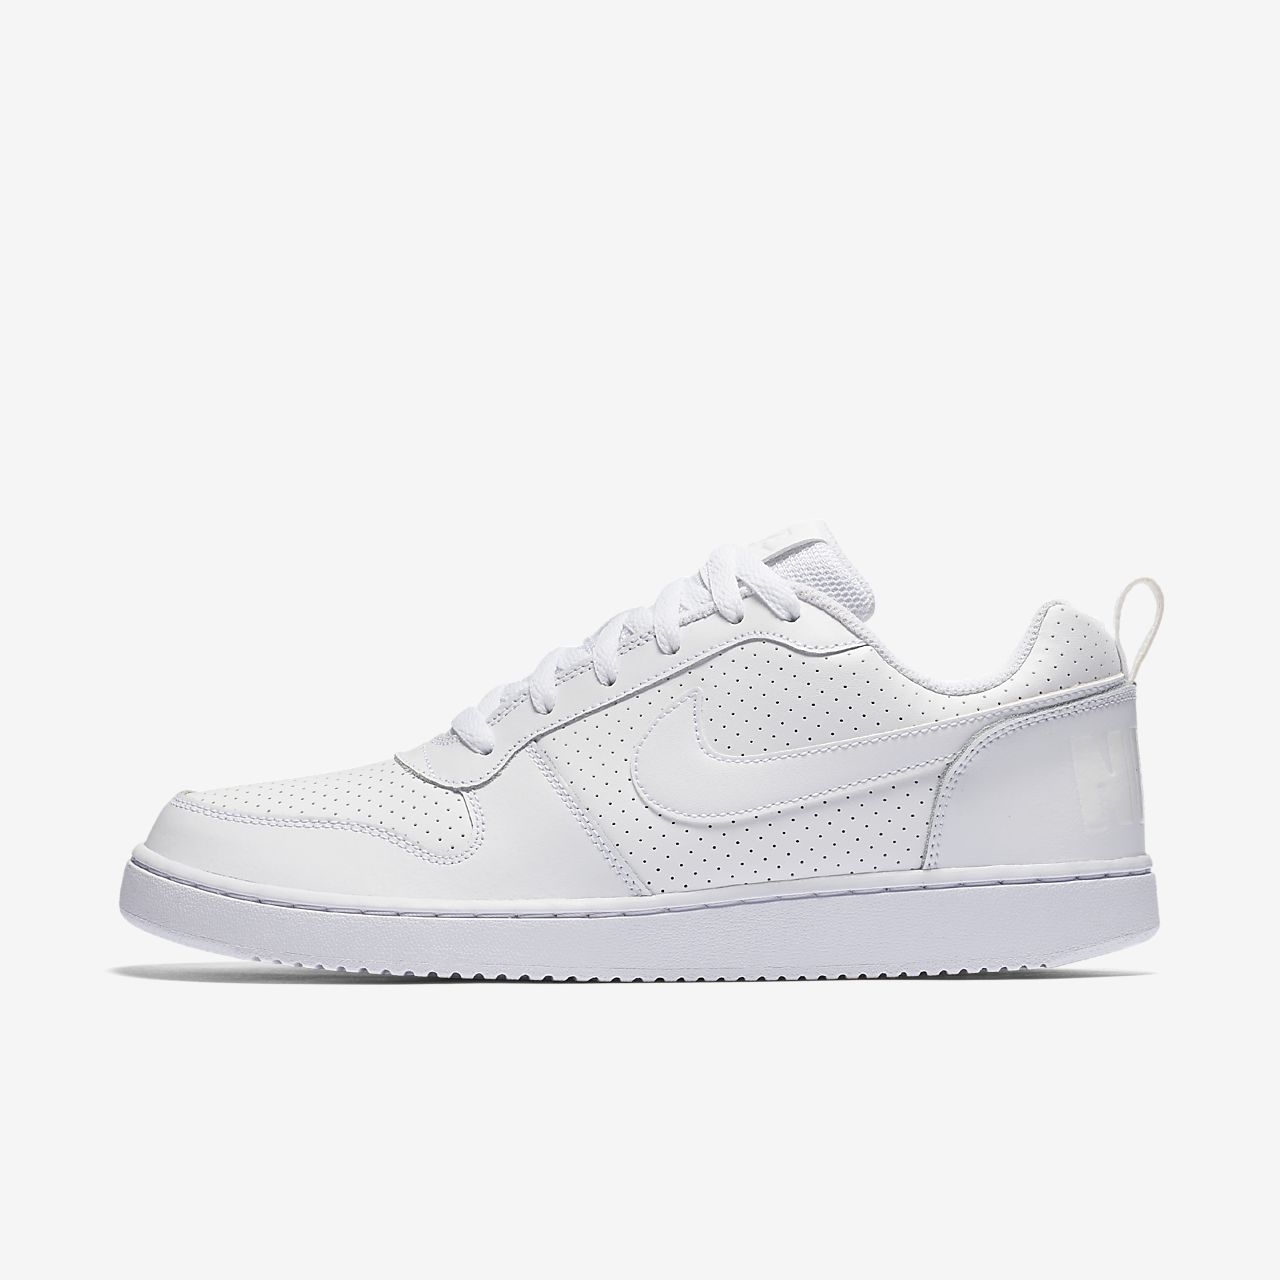 Chaussures Nike Court Borough blanches Casual femme H7NJEJT6fj